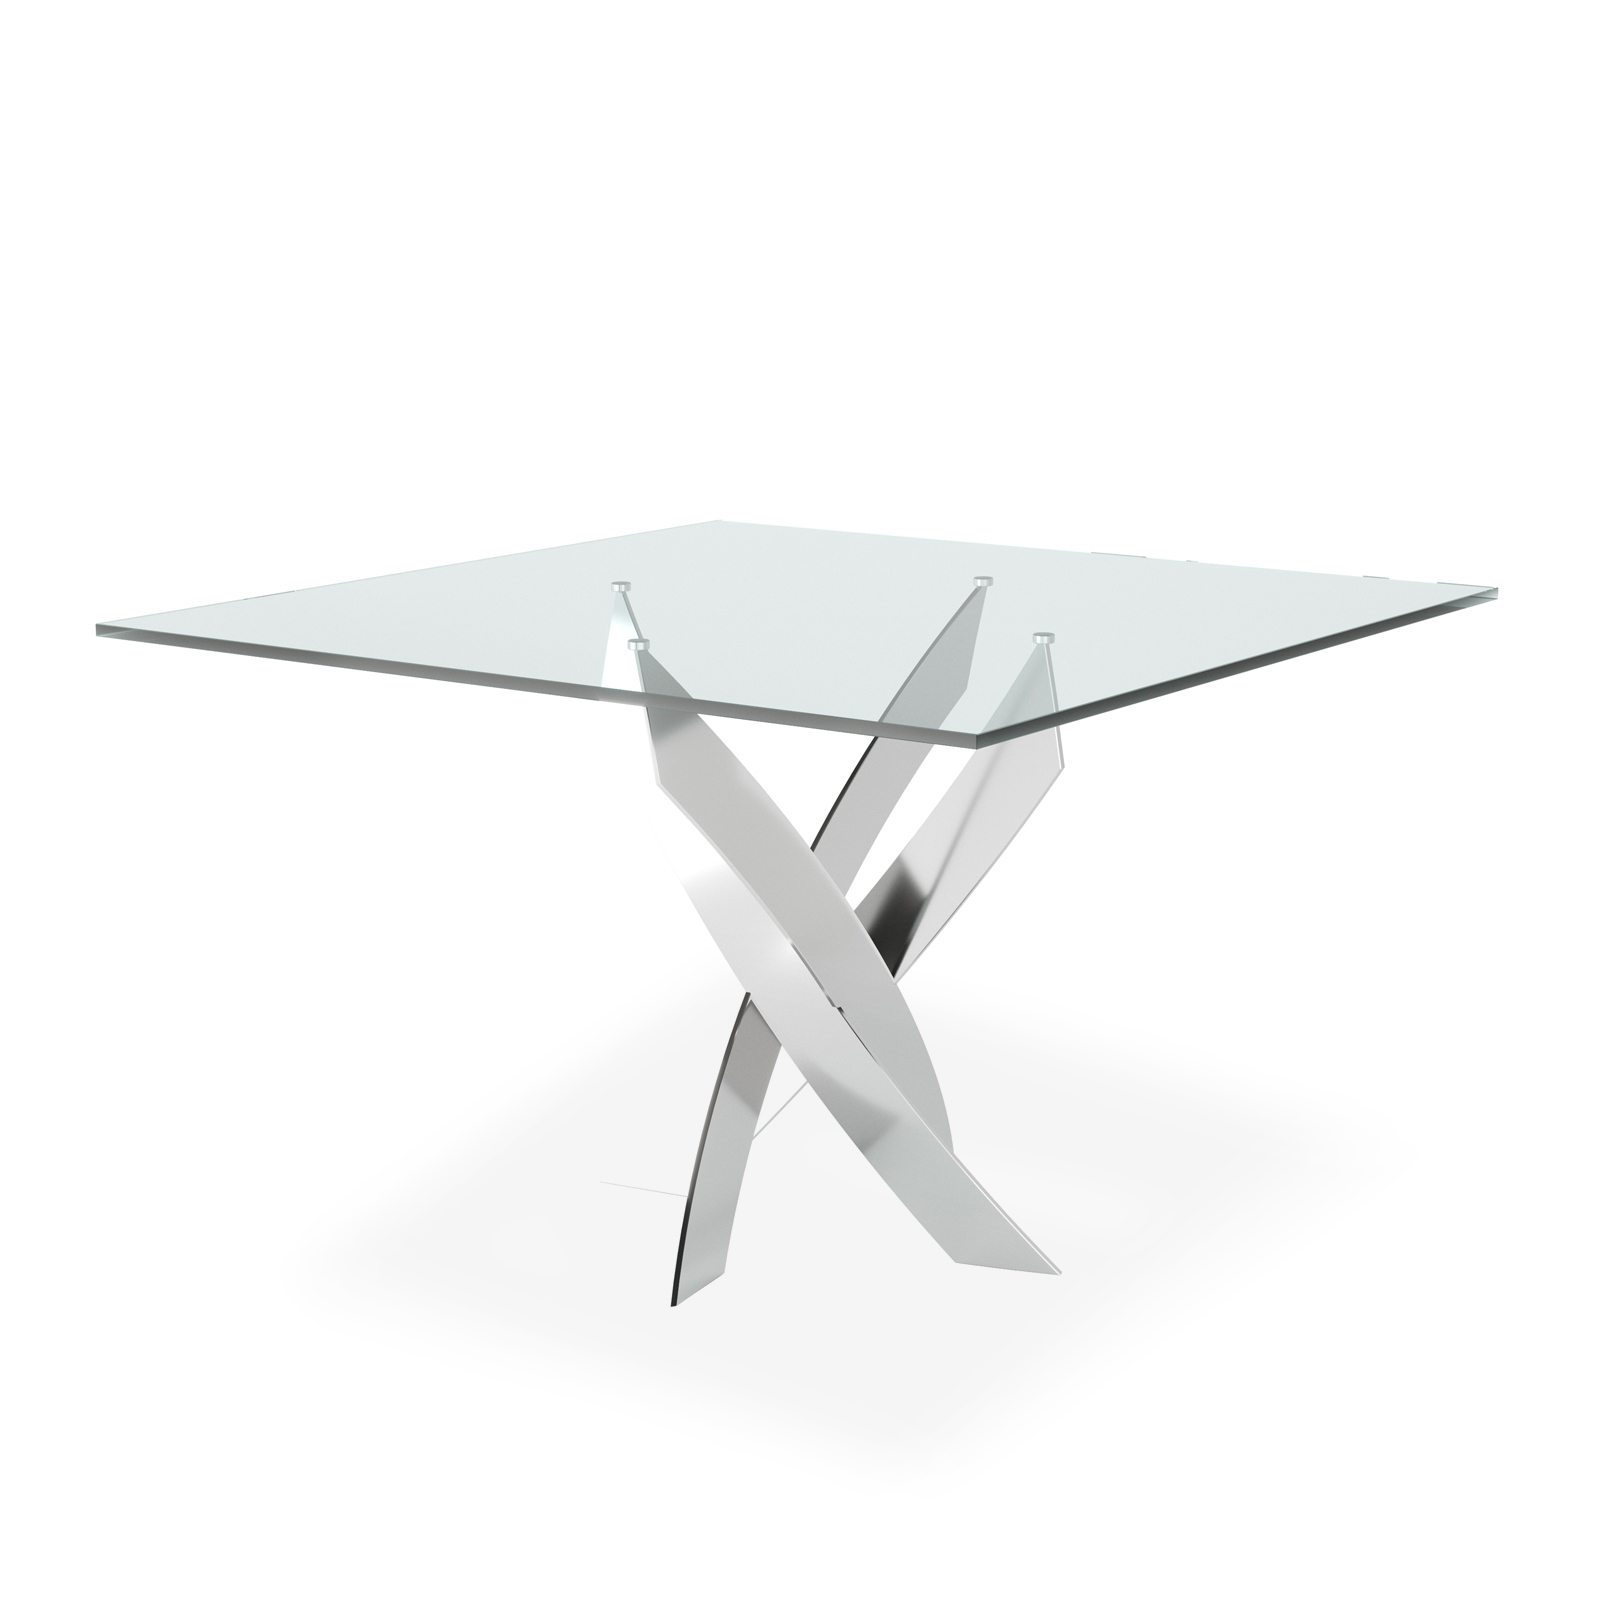 Helix-Dining-Table-Square-Chrome-by-Bonham-&-Bonham-02